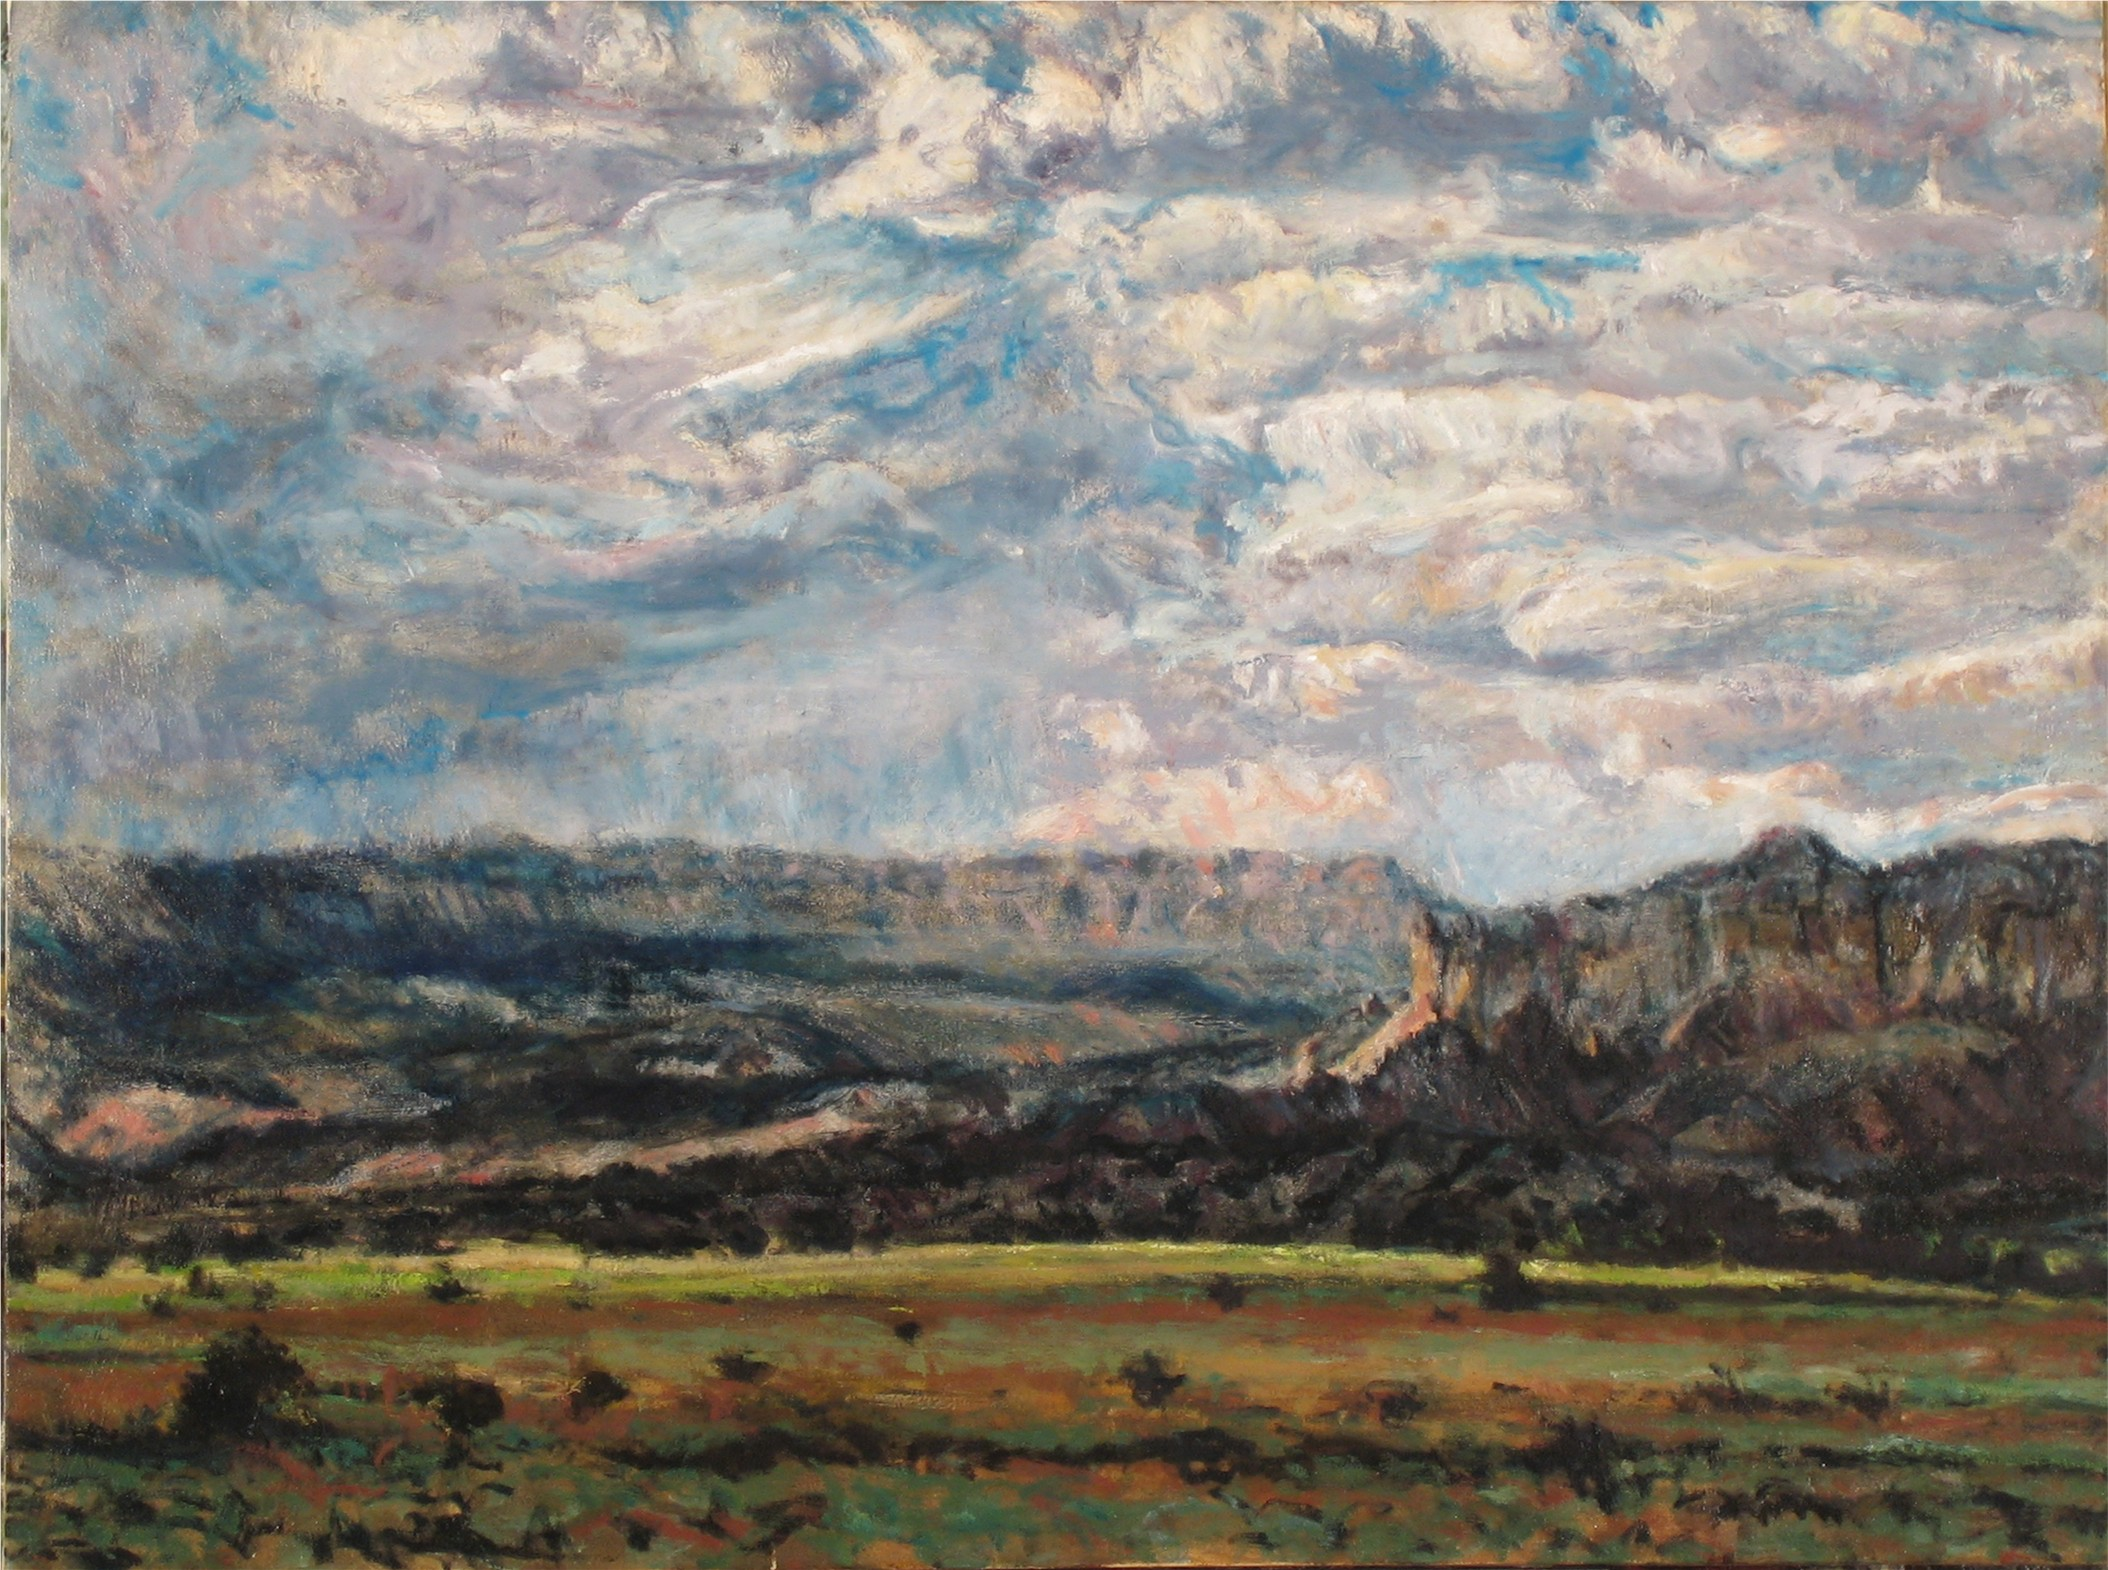 Abiquiu NM-Oil on canvas-30h x 40w in